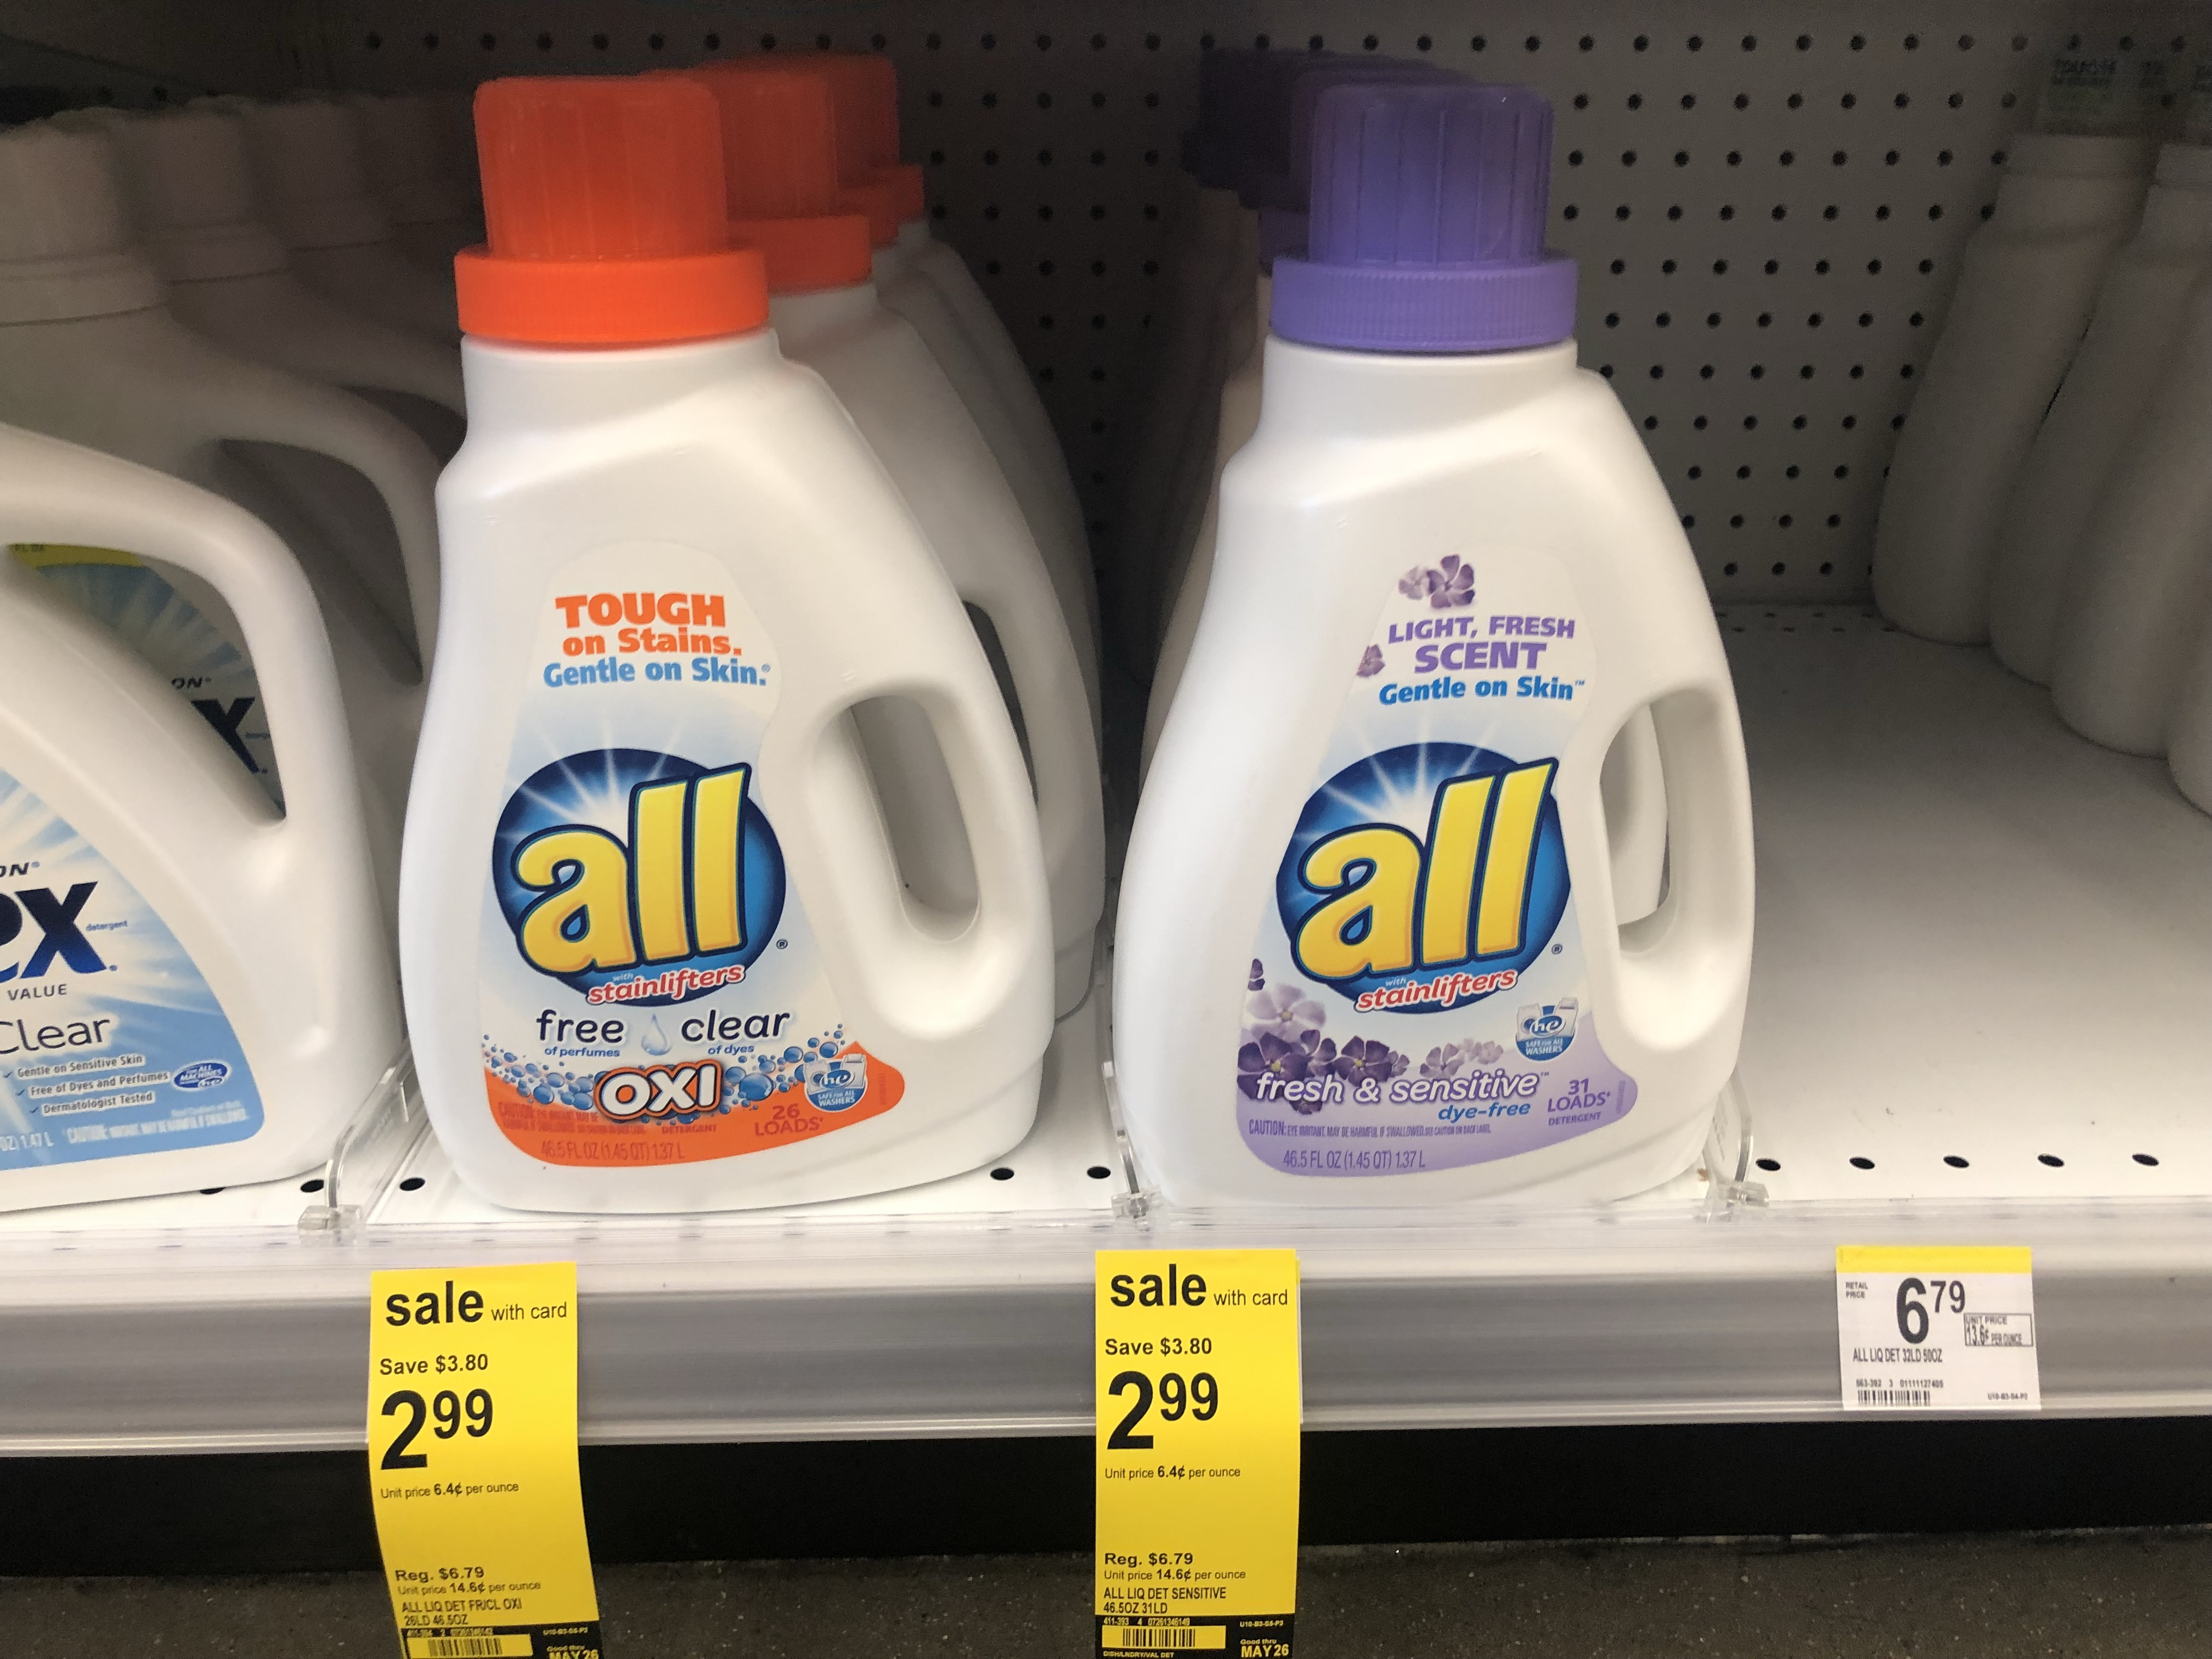 photograph regarding All Laundry Detergent Printable Coupons known as Clean $1/1 All Laundry Detergent Coupon \u003d Simply just $1.99 at